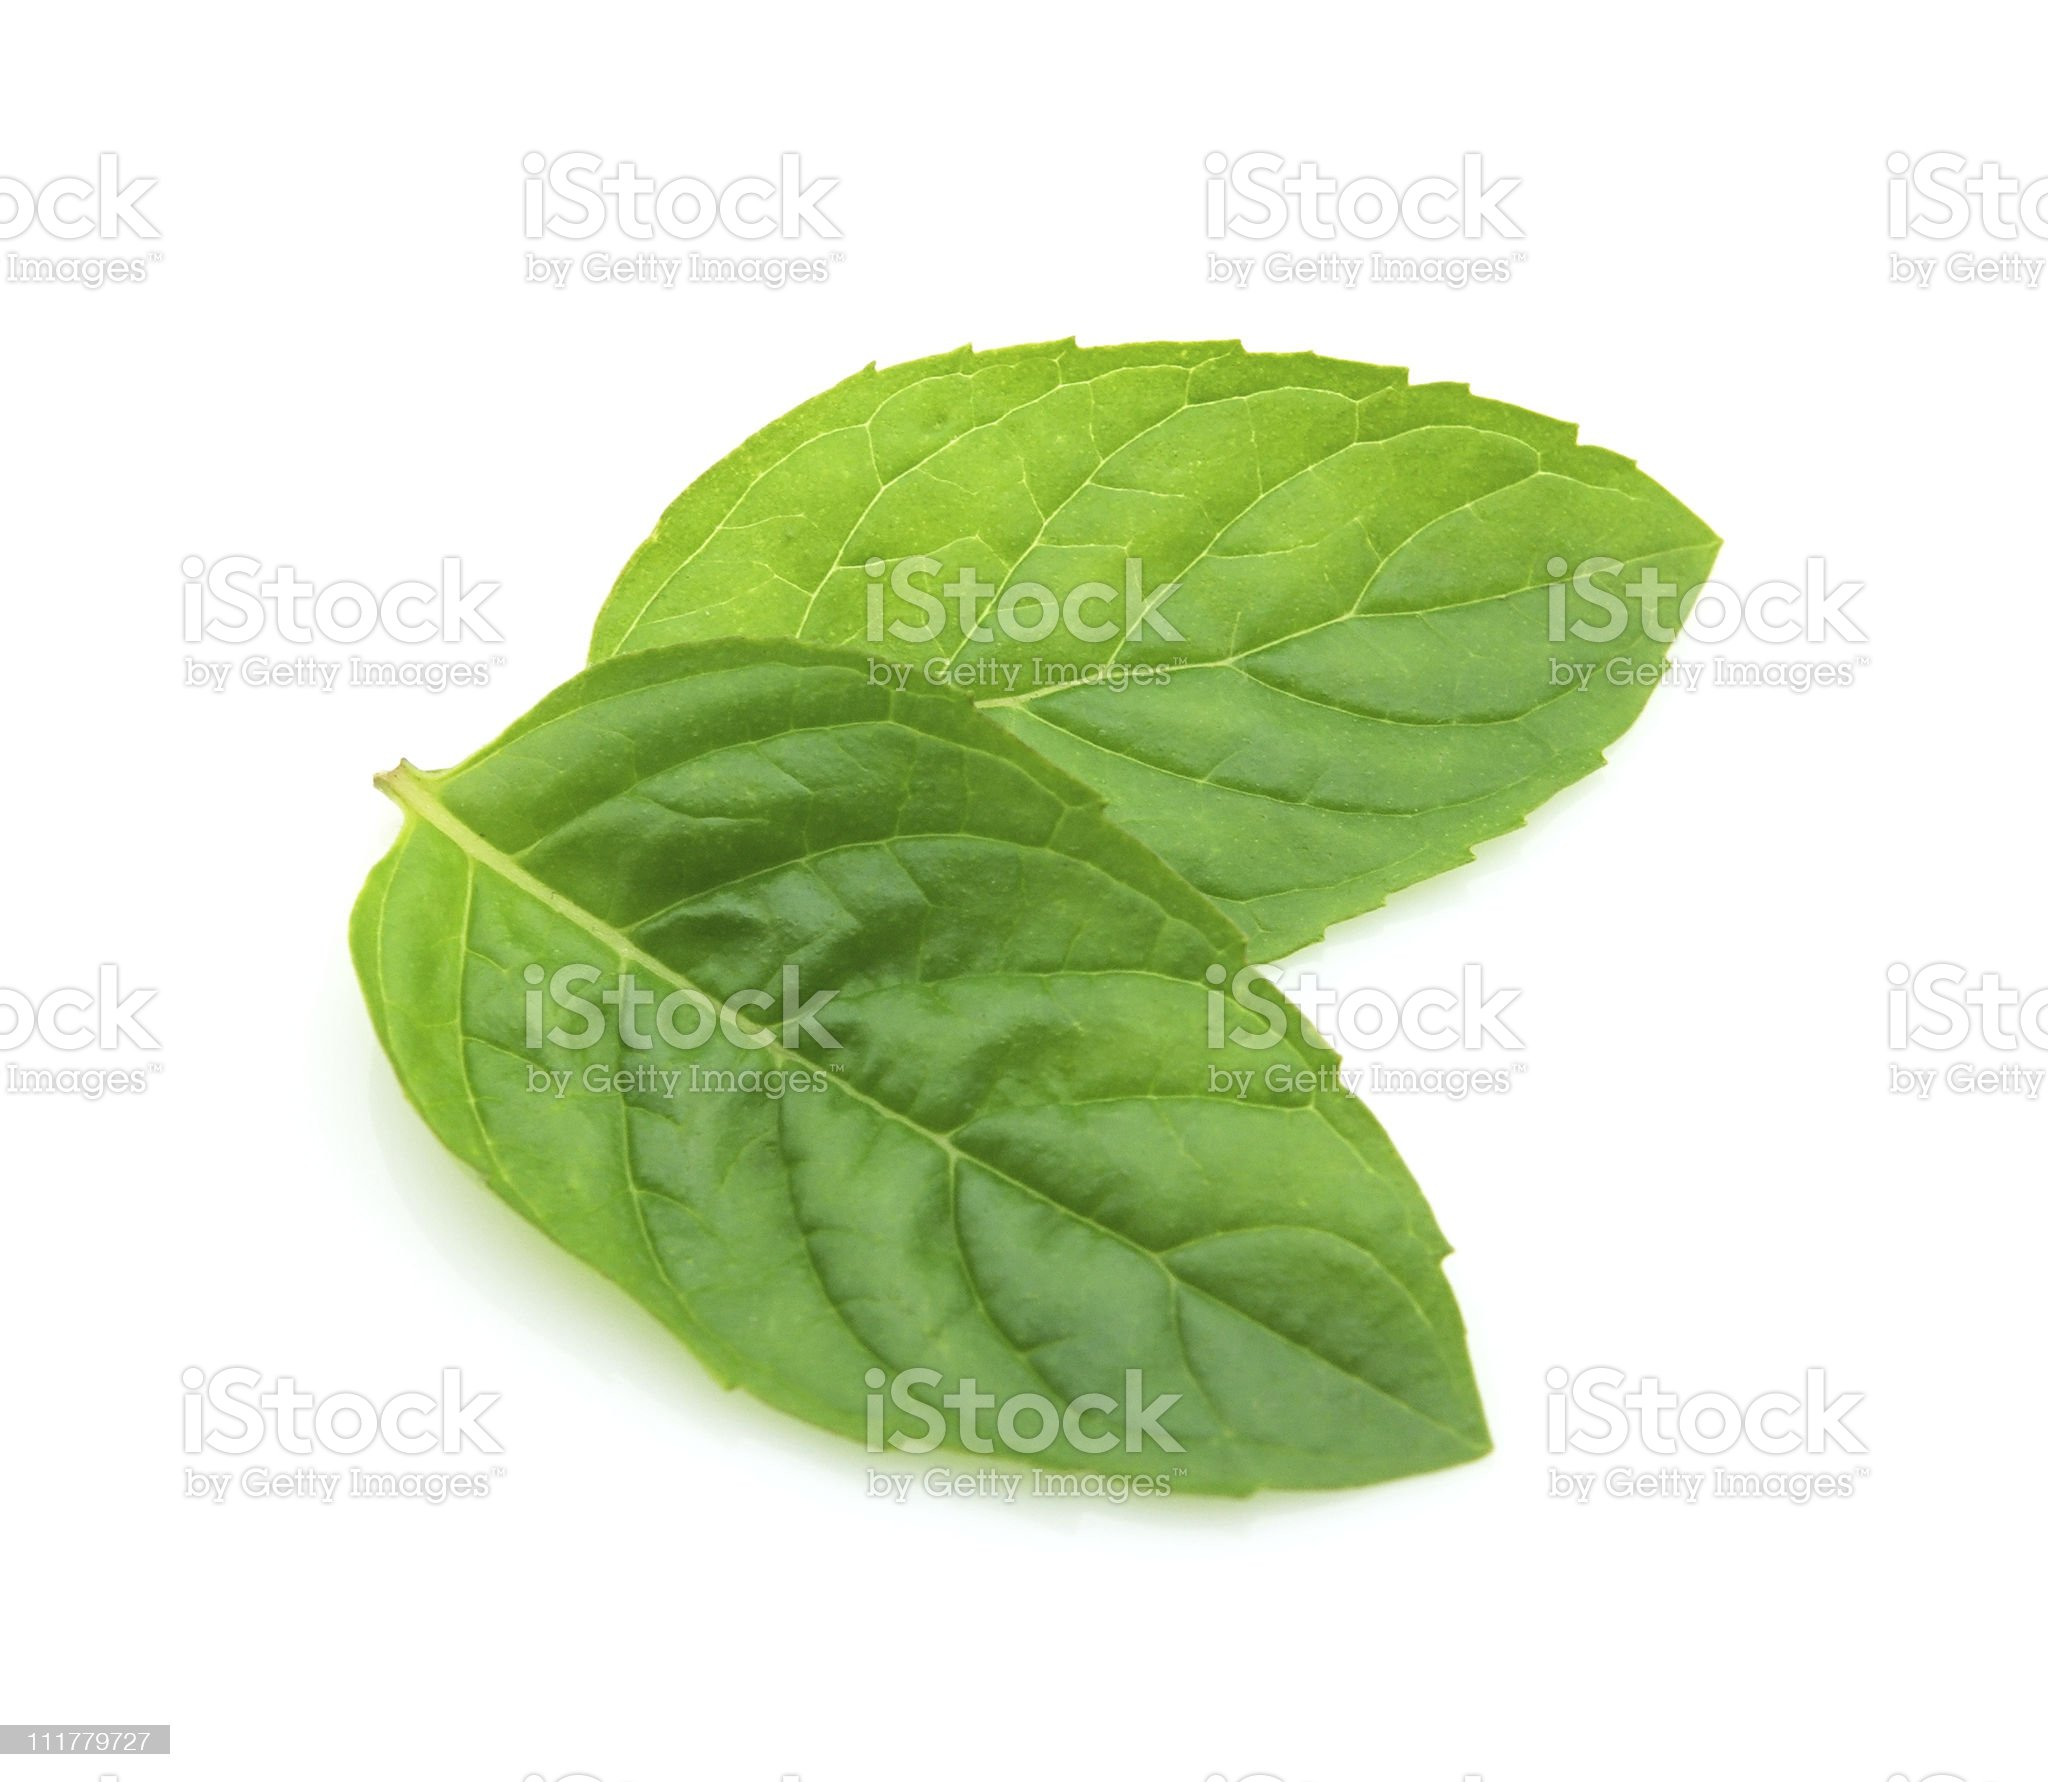 Leaves of mint royalty-free stock photo